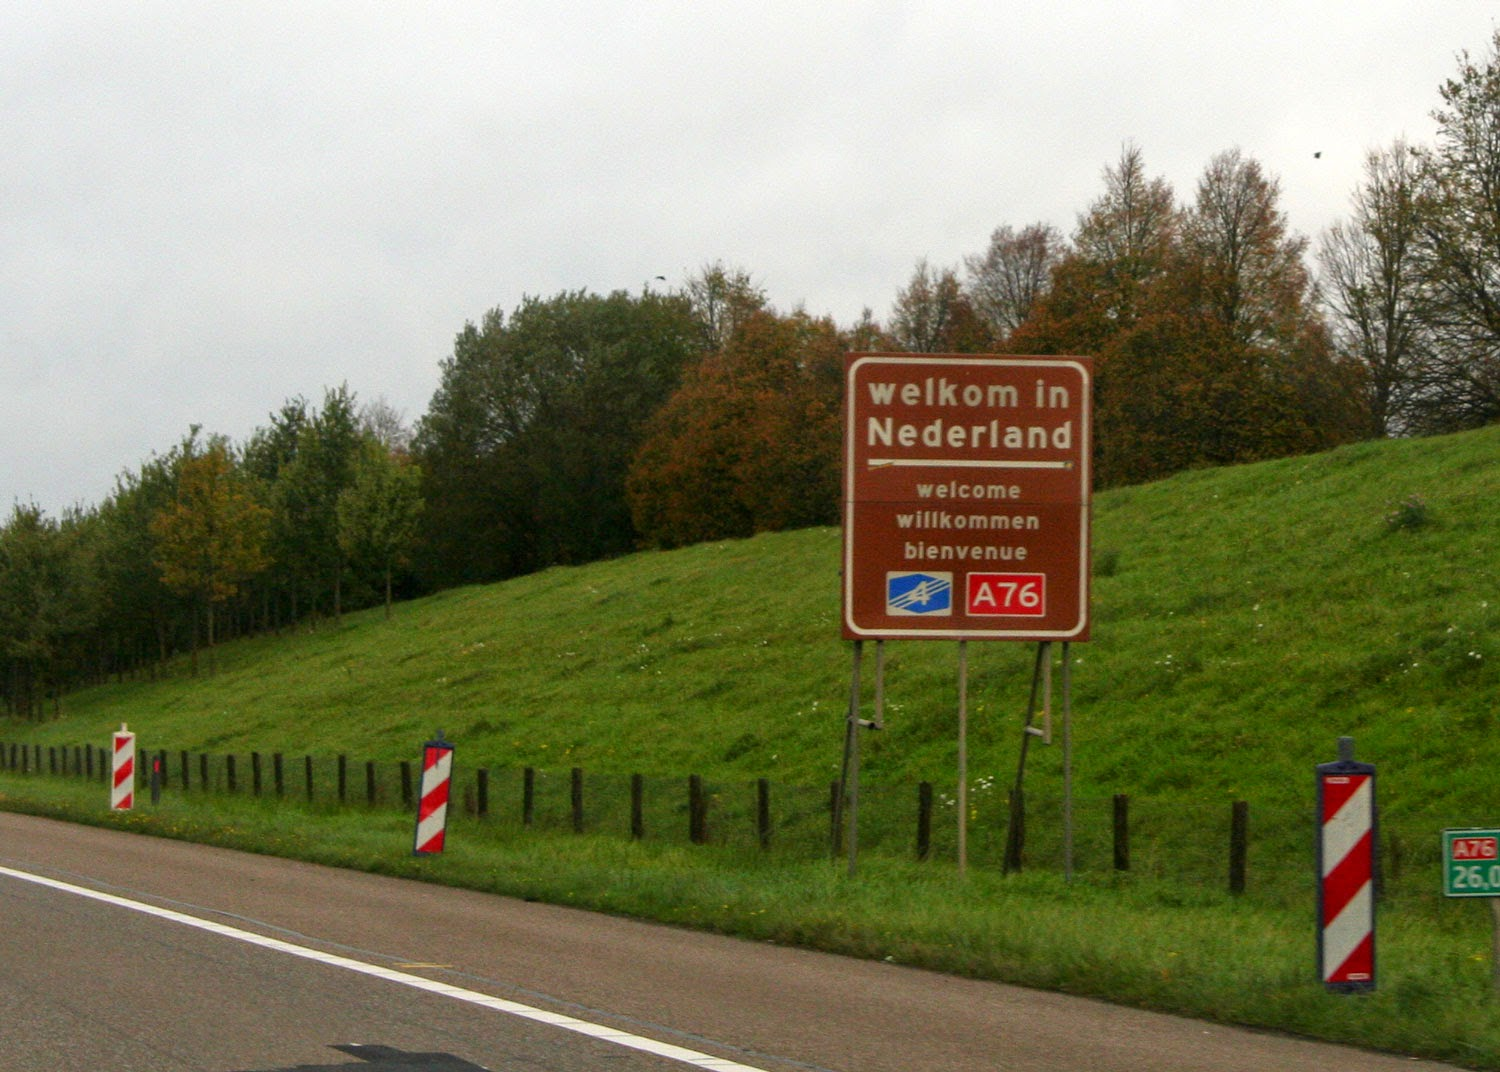 Proof of us entering The Netherlands